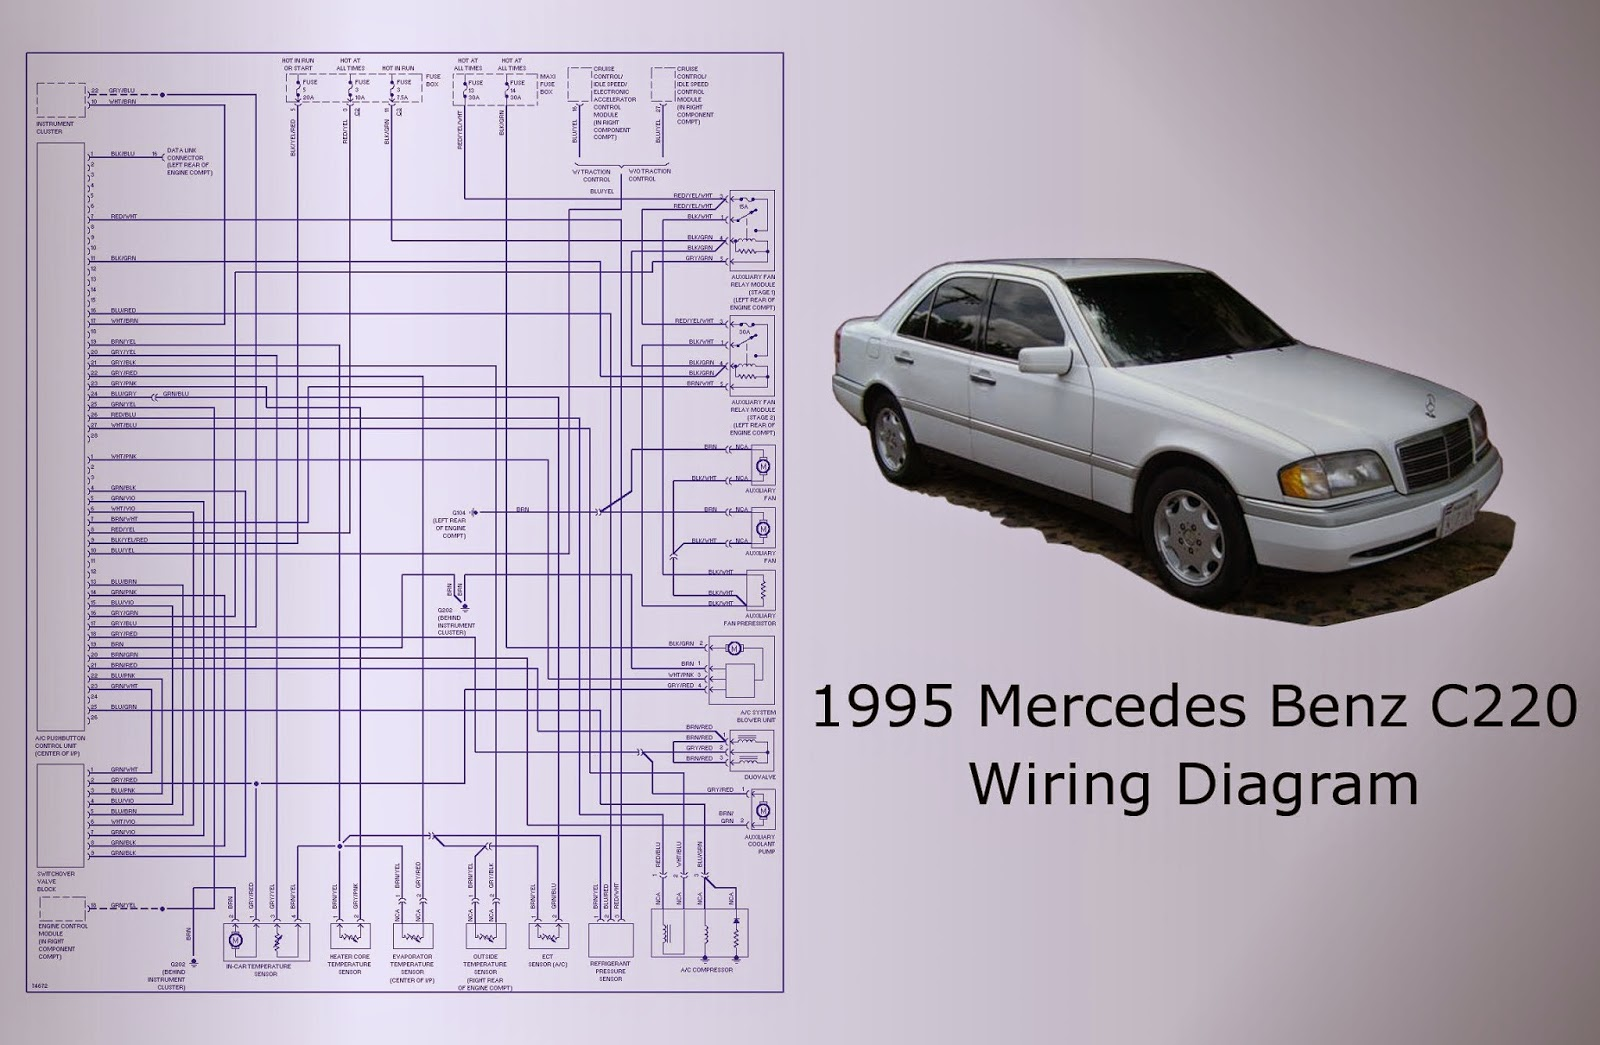 Wiring Diagram 1995 Mercedes Benz C220 - Electrical Drawing Wiring ...